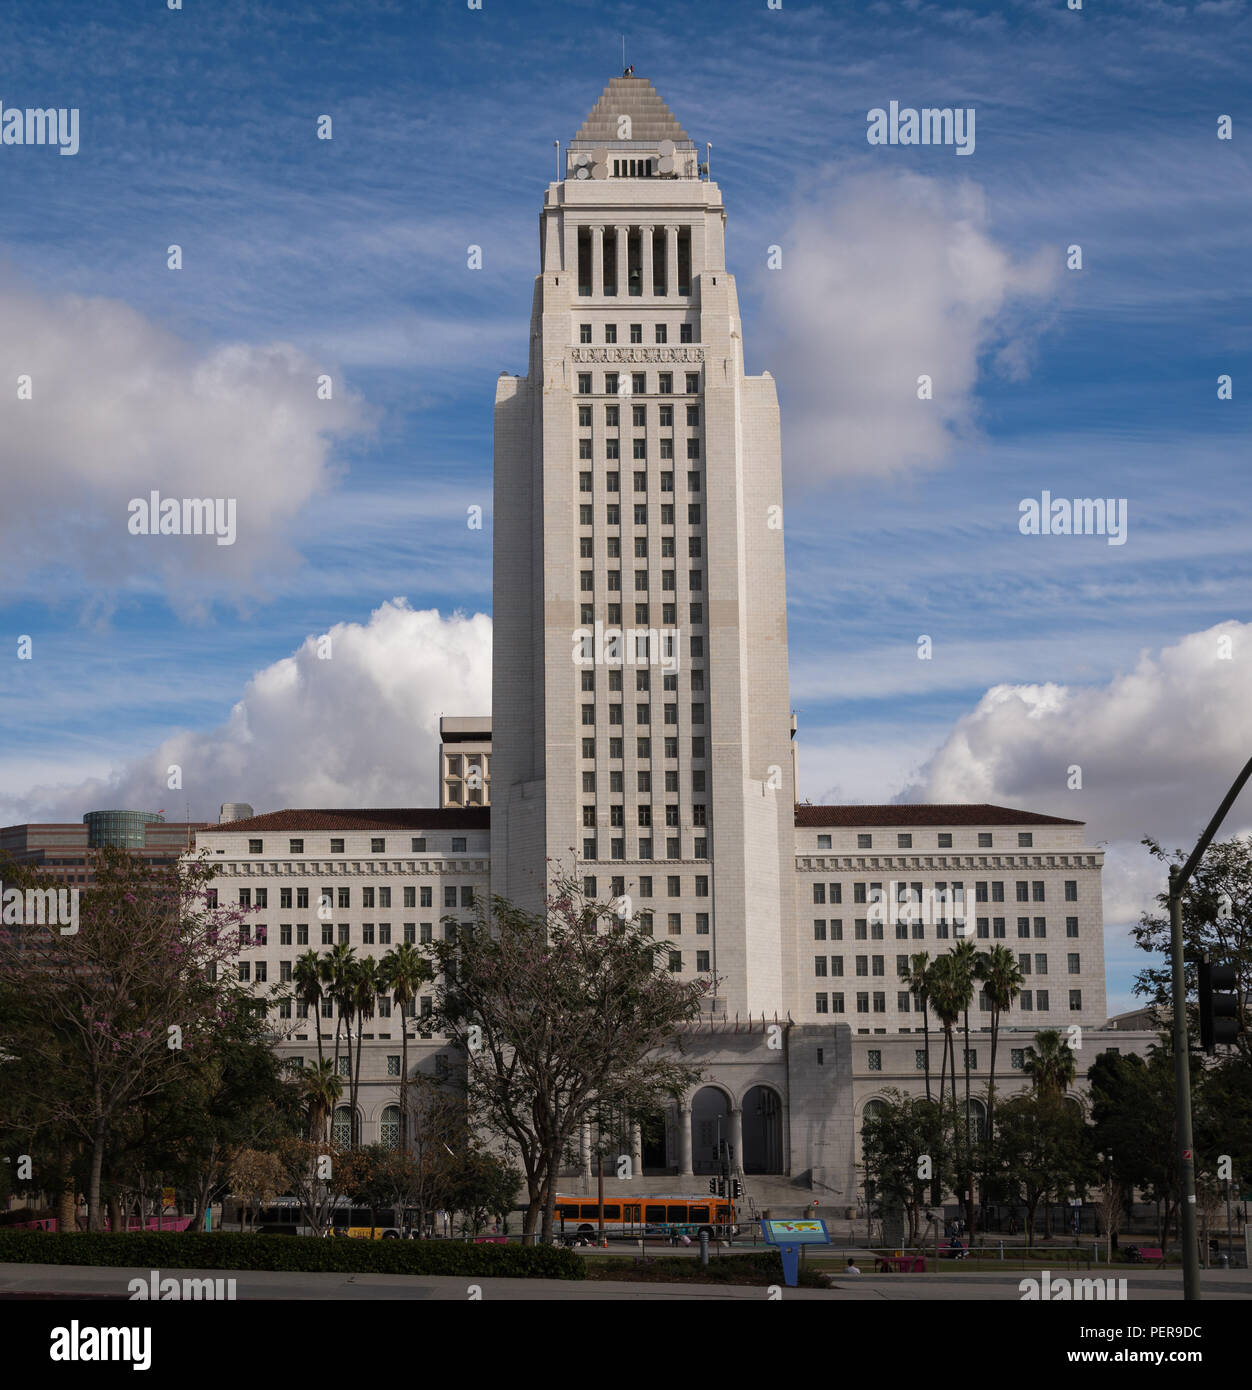 Exterior of the Los Angeles City Hall building, shot from N. Broadway. - Stock Image